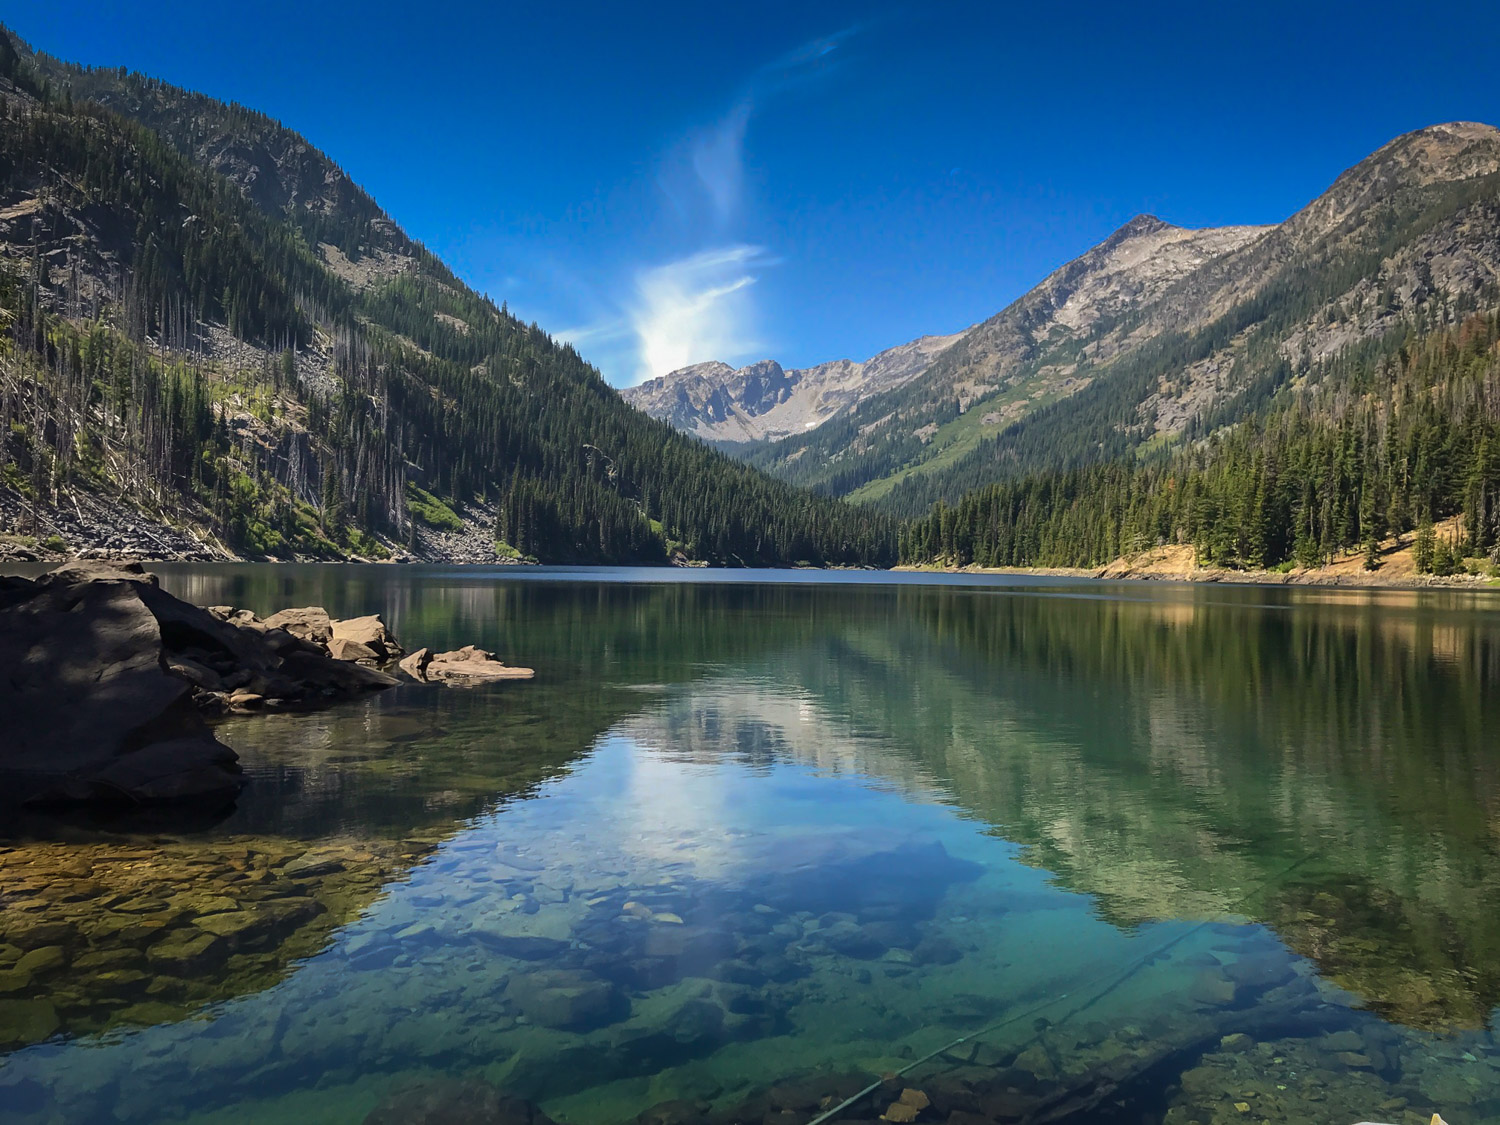 Guests shared this amazing view at local Eight Mile Lake... come explore the Cascades and renew!